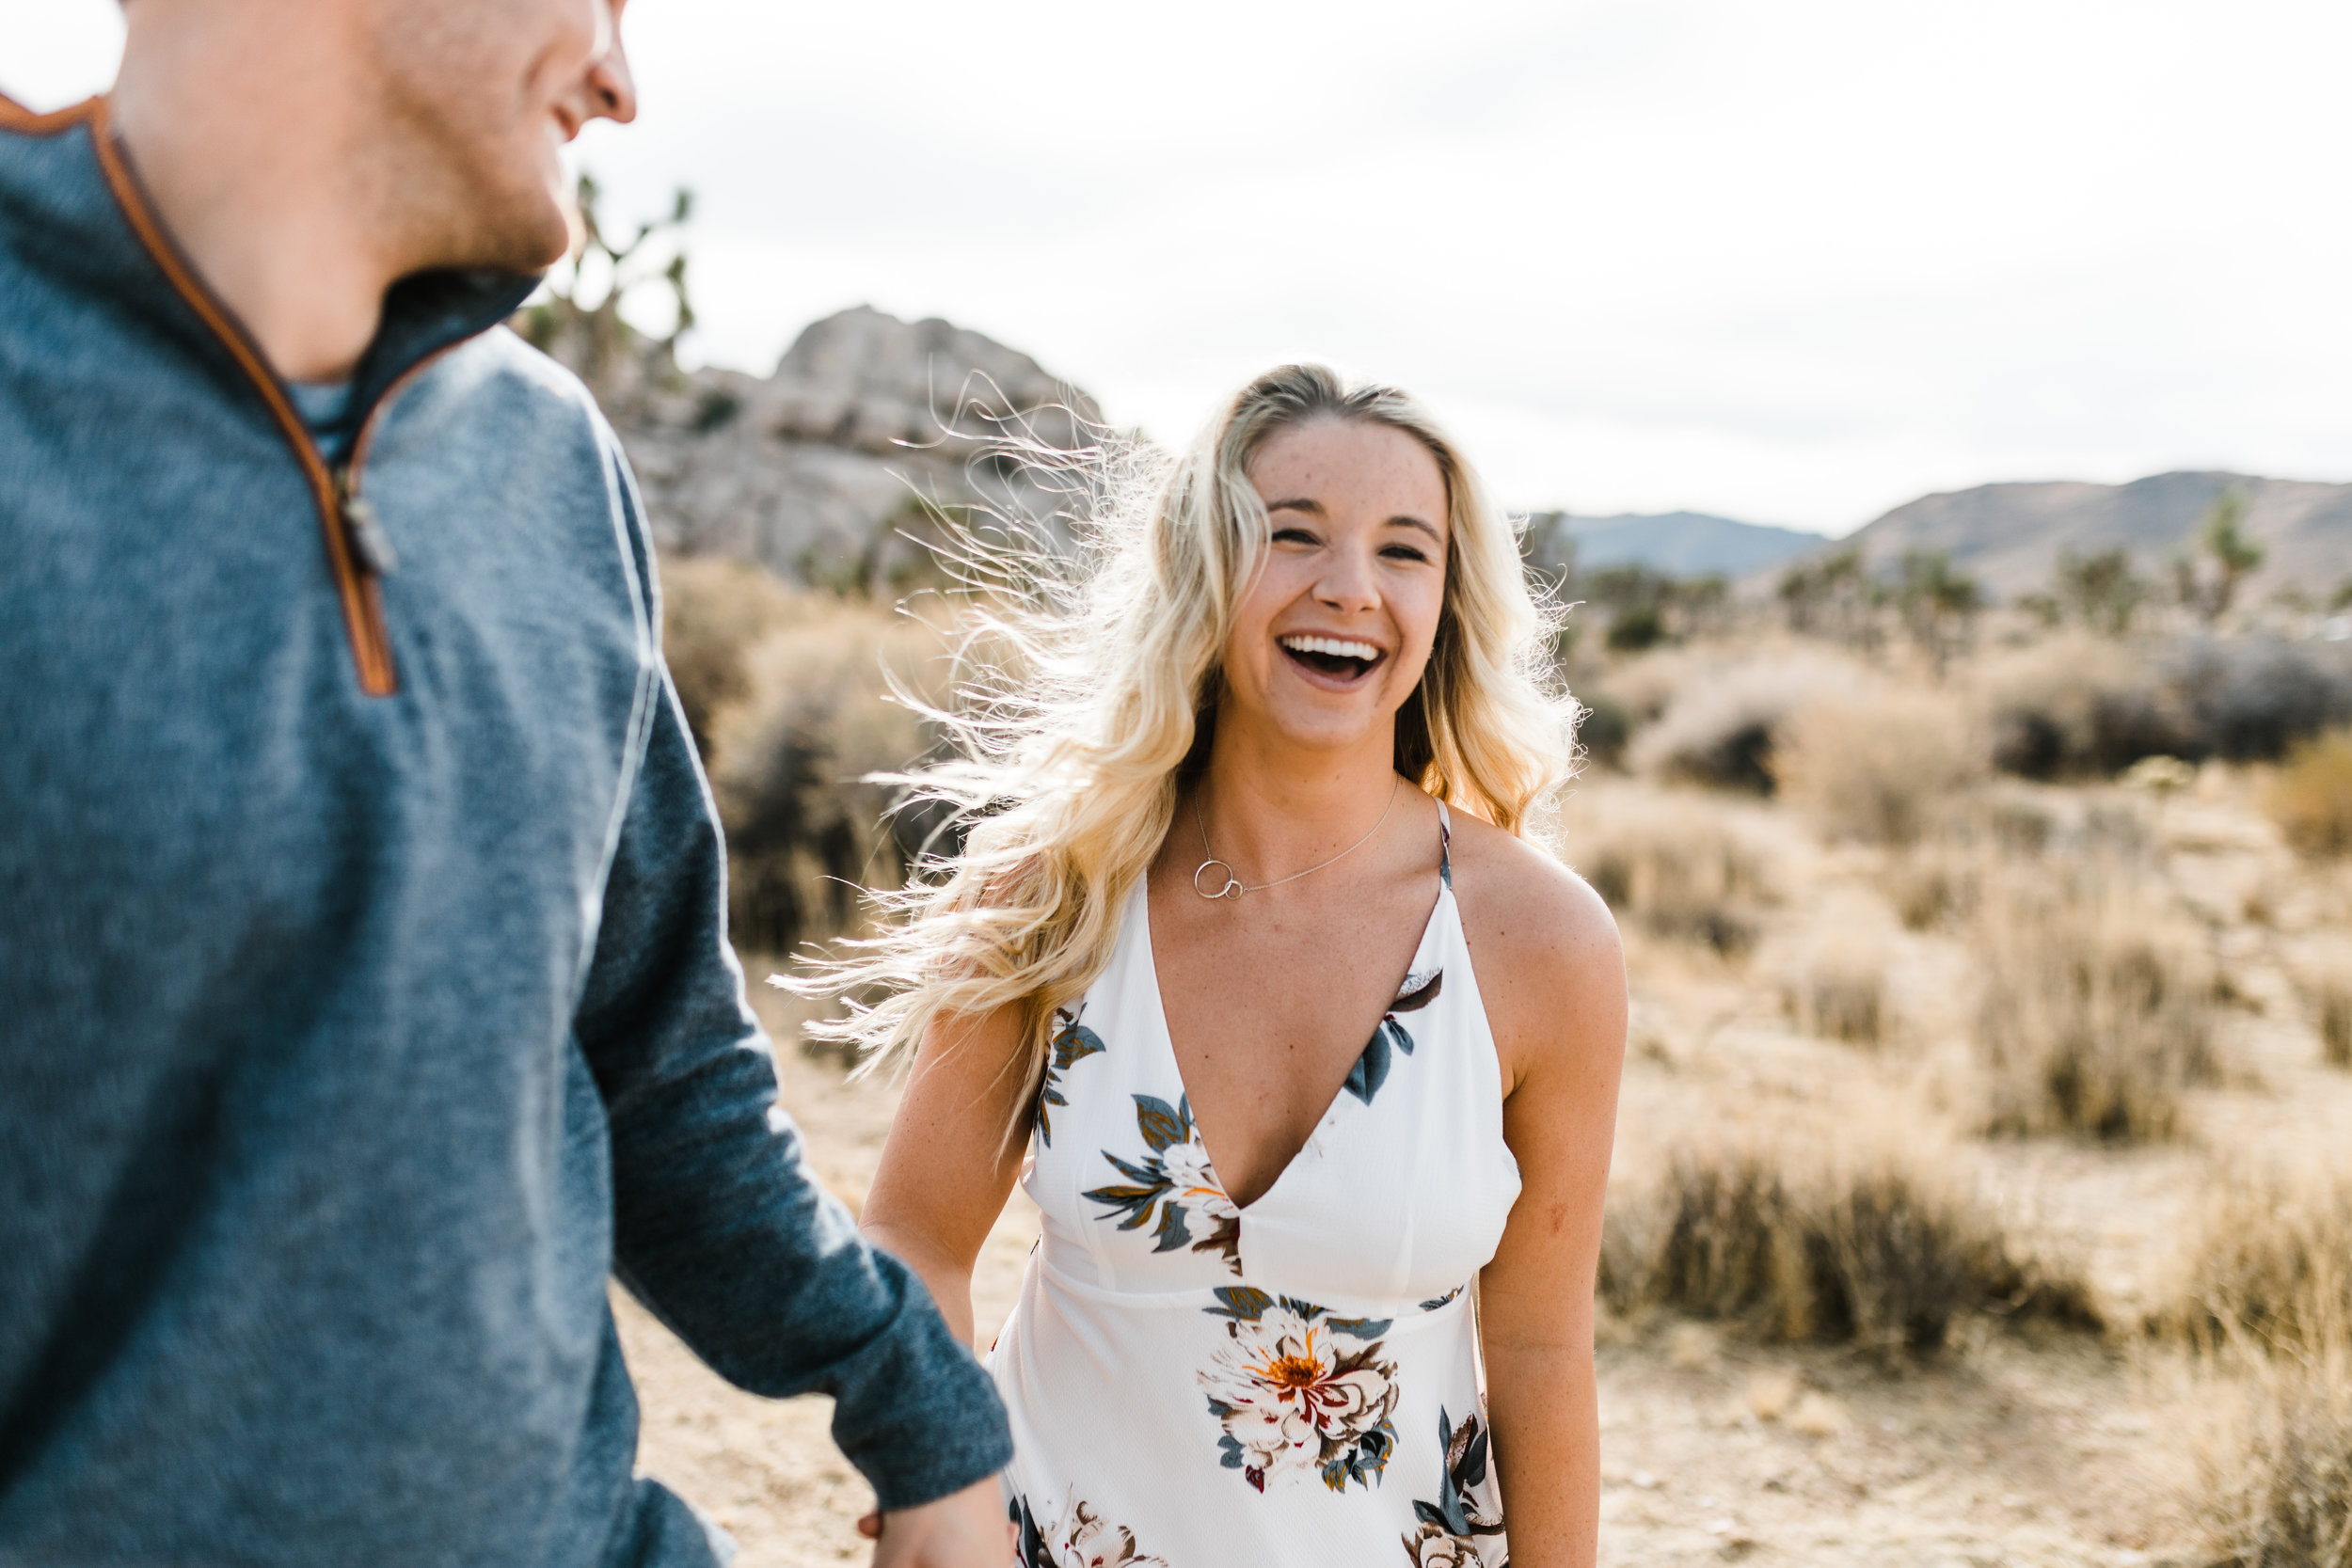 Dano&Andrew-Joshua-Tree-Engagement-Session-CRM-Media-Southern-California-Wedding-Photographer34